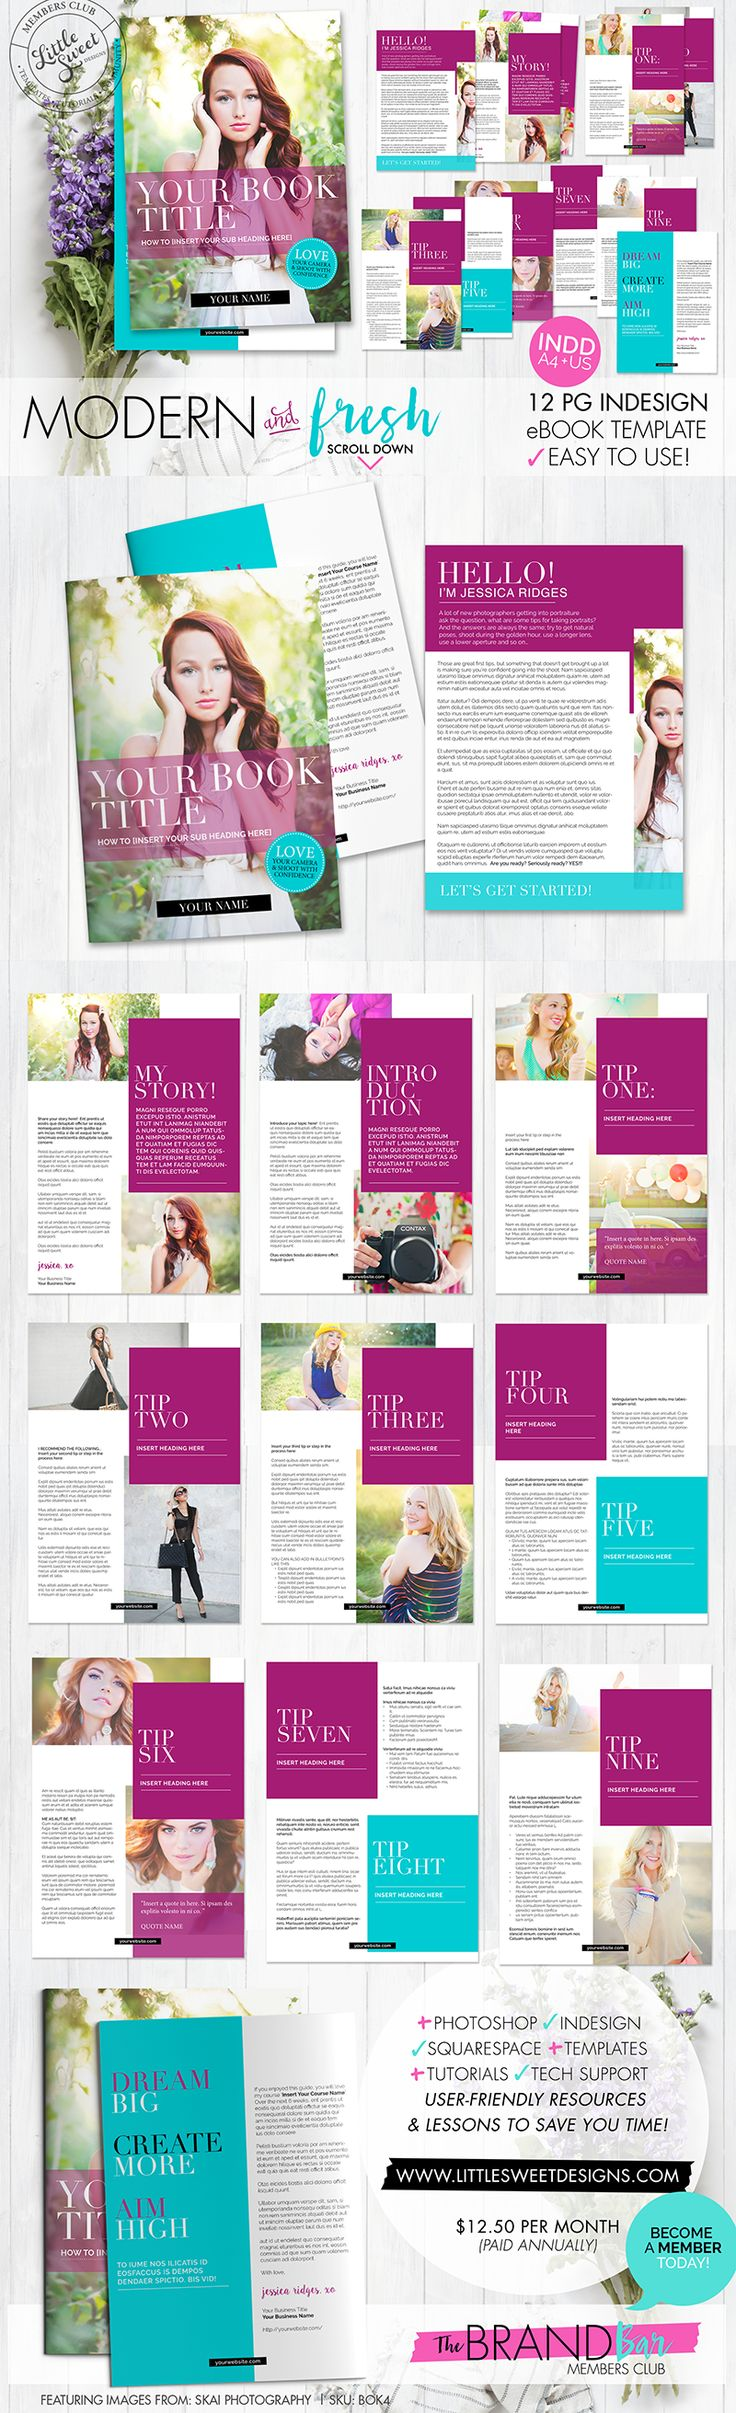 InDesign TEMPLATE // A gorgeous design for you to create a welcome magazine, eBook, eGuide, checklist or downloadable PDF.  Perfect if you're giving away a free eBook as an opt-in to your email list (via your website) or if you want to send out a welcome info pack to your clients.  :)  Recently added to #thebrandbar Members Club > Join today & get access to 100's of designer templates (in Photoshop + InDesign) without the designer price-tag. #thebrandbar #littlesweetdesigns